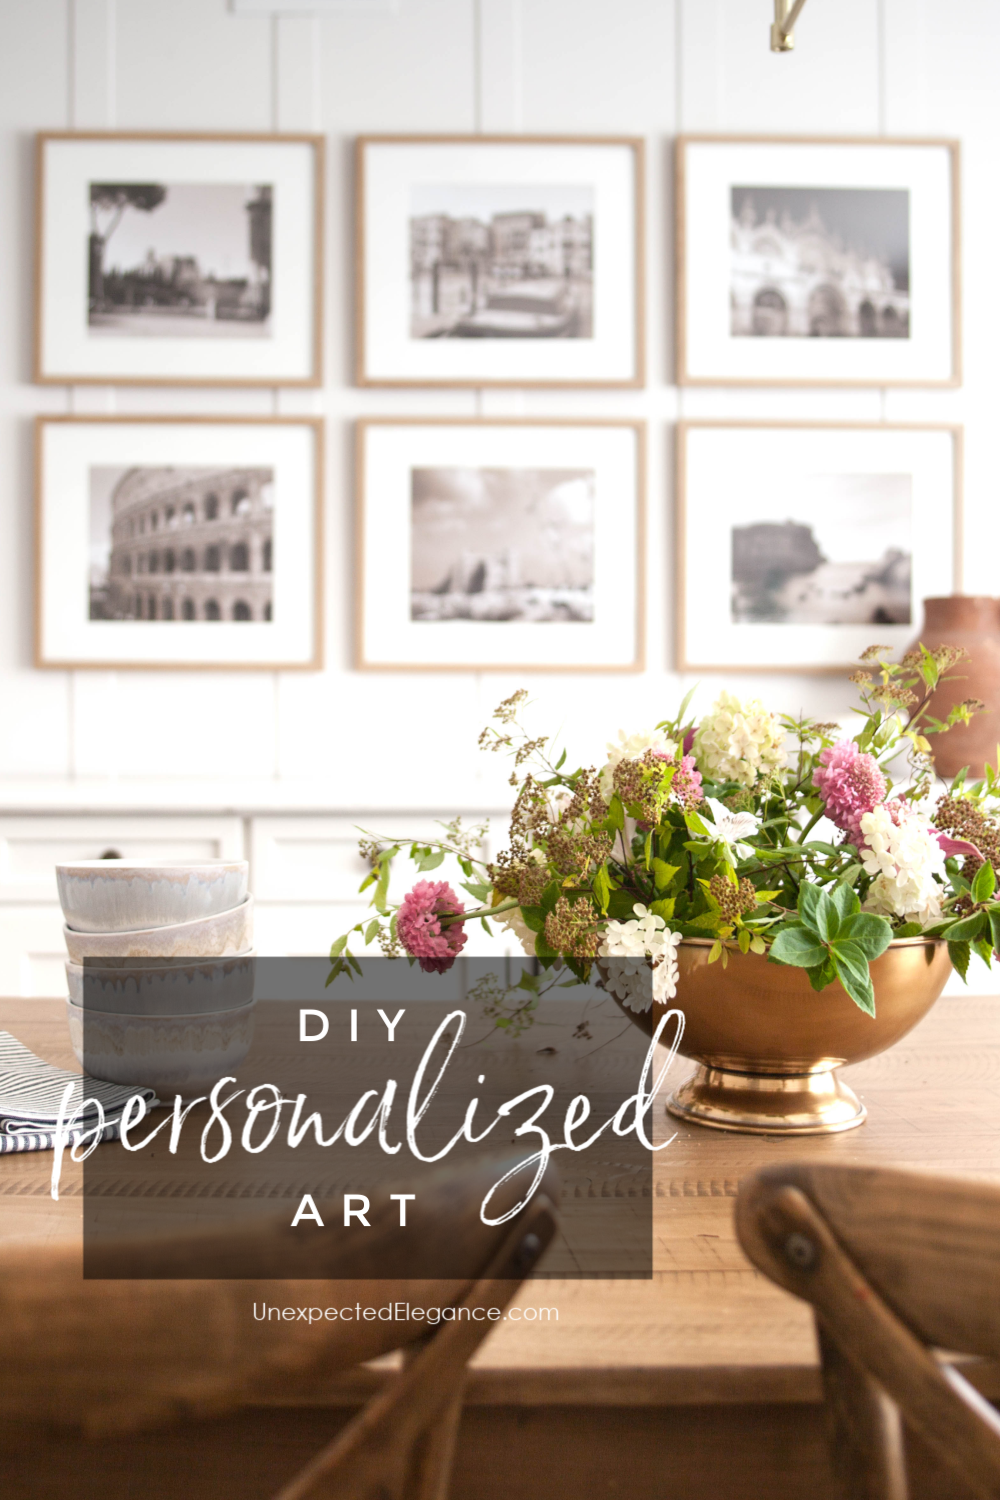 Check out how to create simple DIY personalized art.  This is an inexpensive way to add personality to your home without breaking the bank!